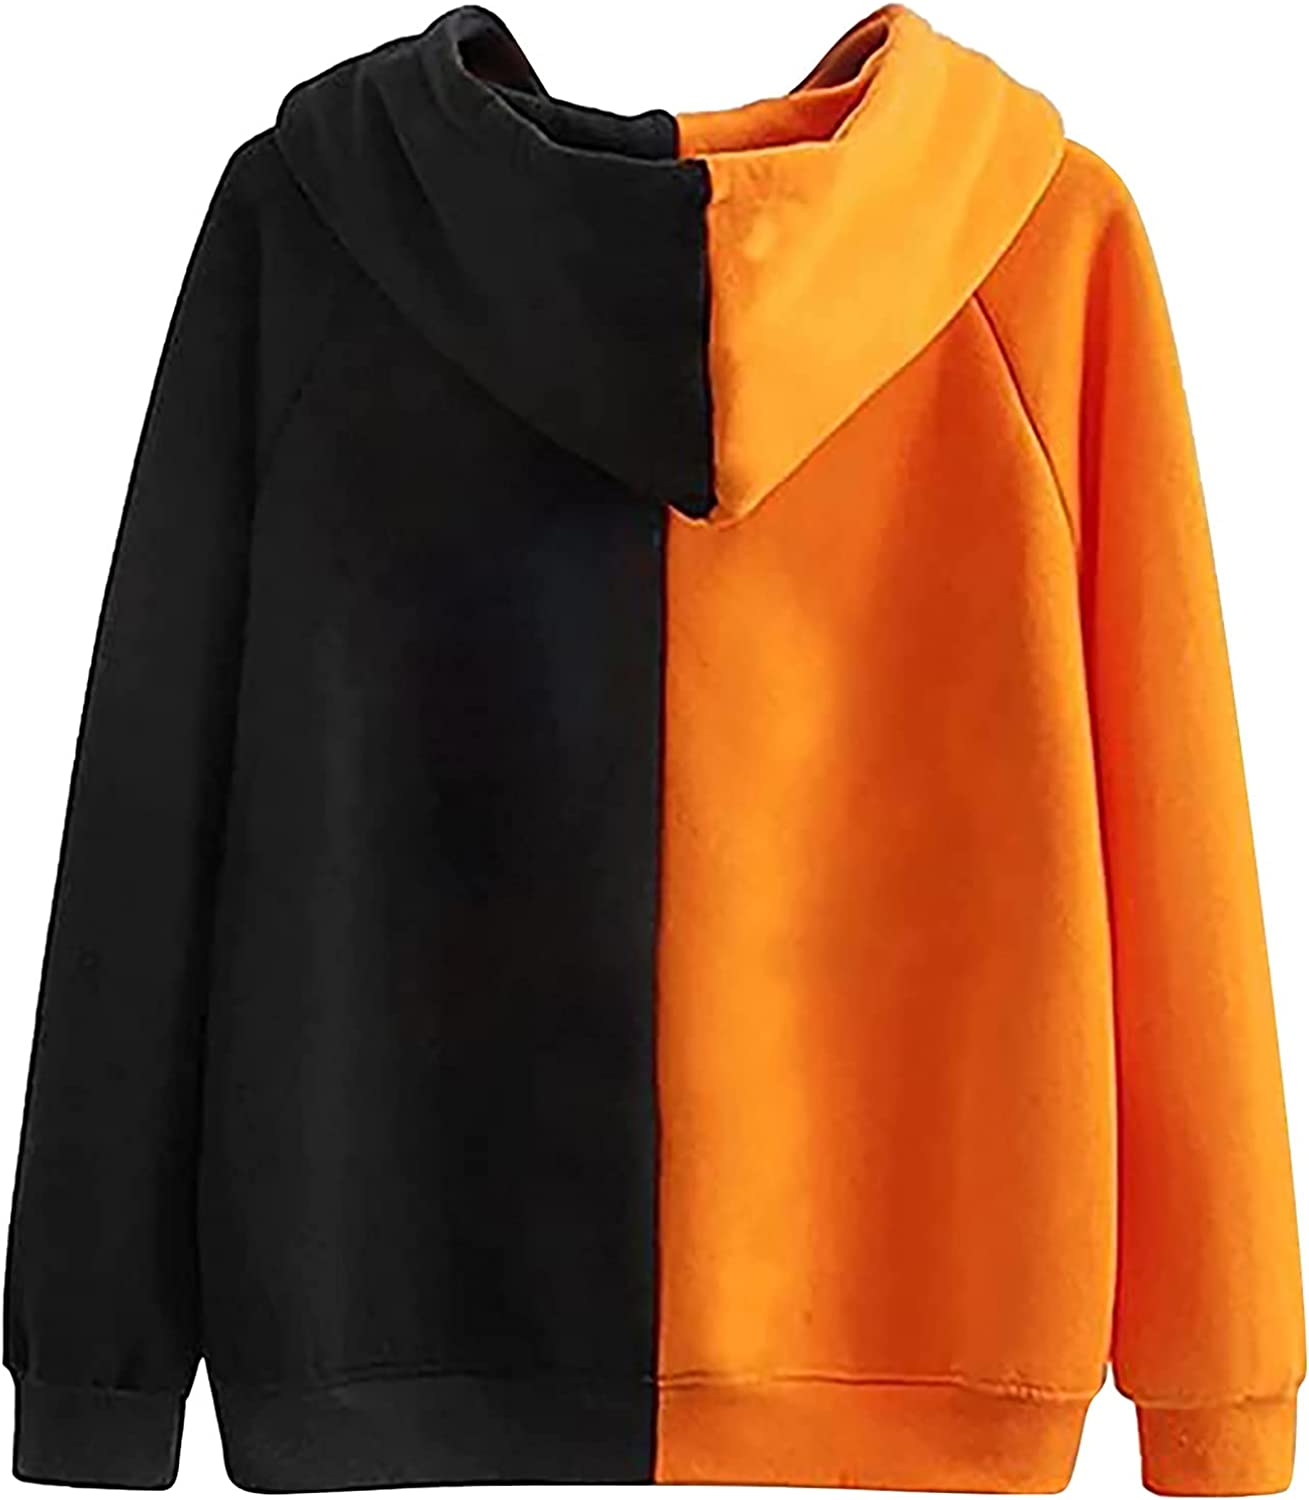 Womens Halloween Stitching Hoodies,Oversize Casual Long Sleeve Fall Hooded Sweatshirts Vintage Blouse Pullover Sweaters